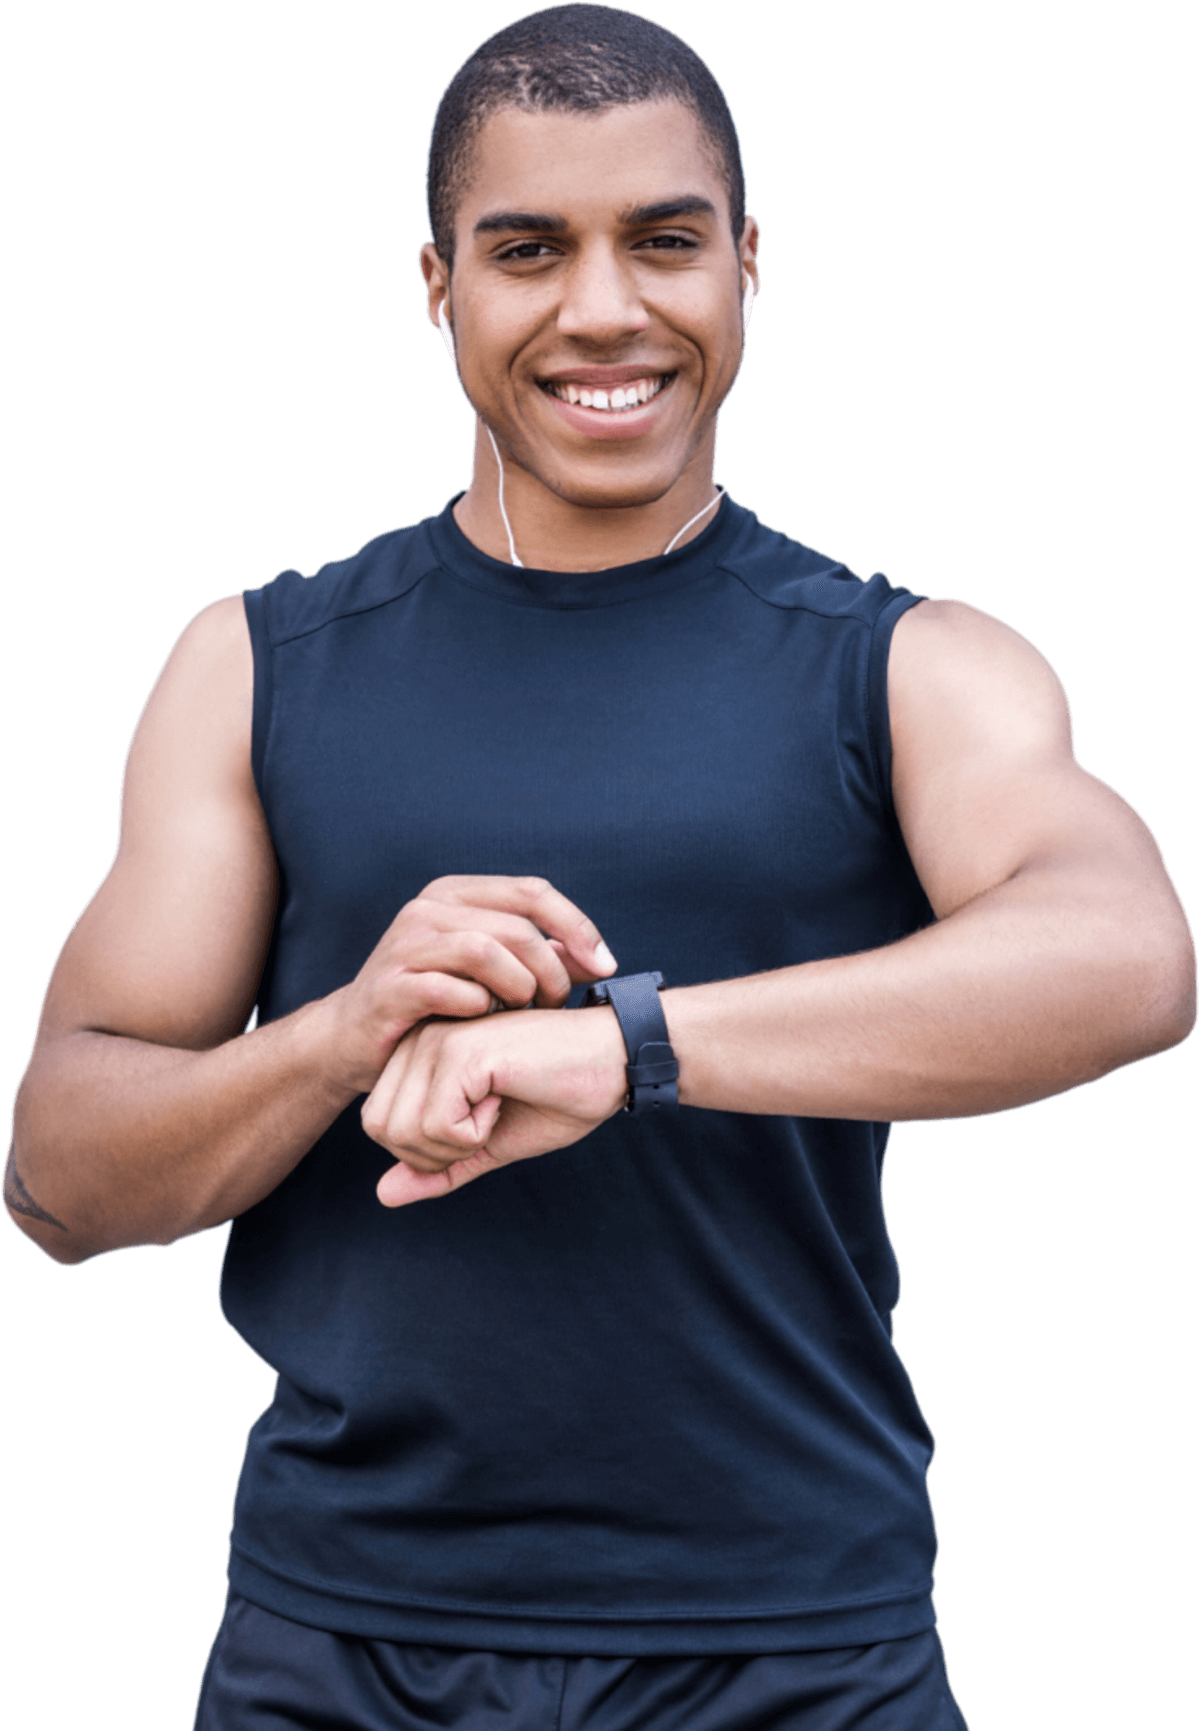 A smiling man fidgeting with his watch.